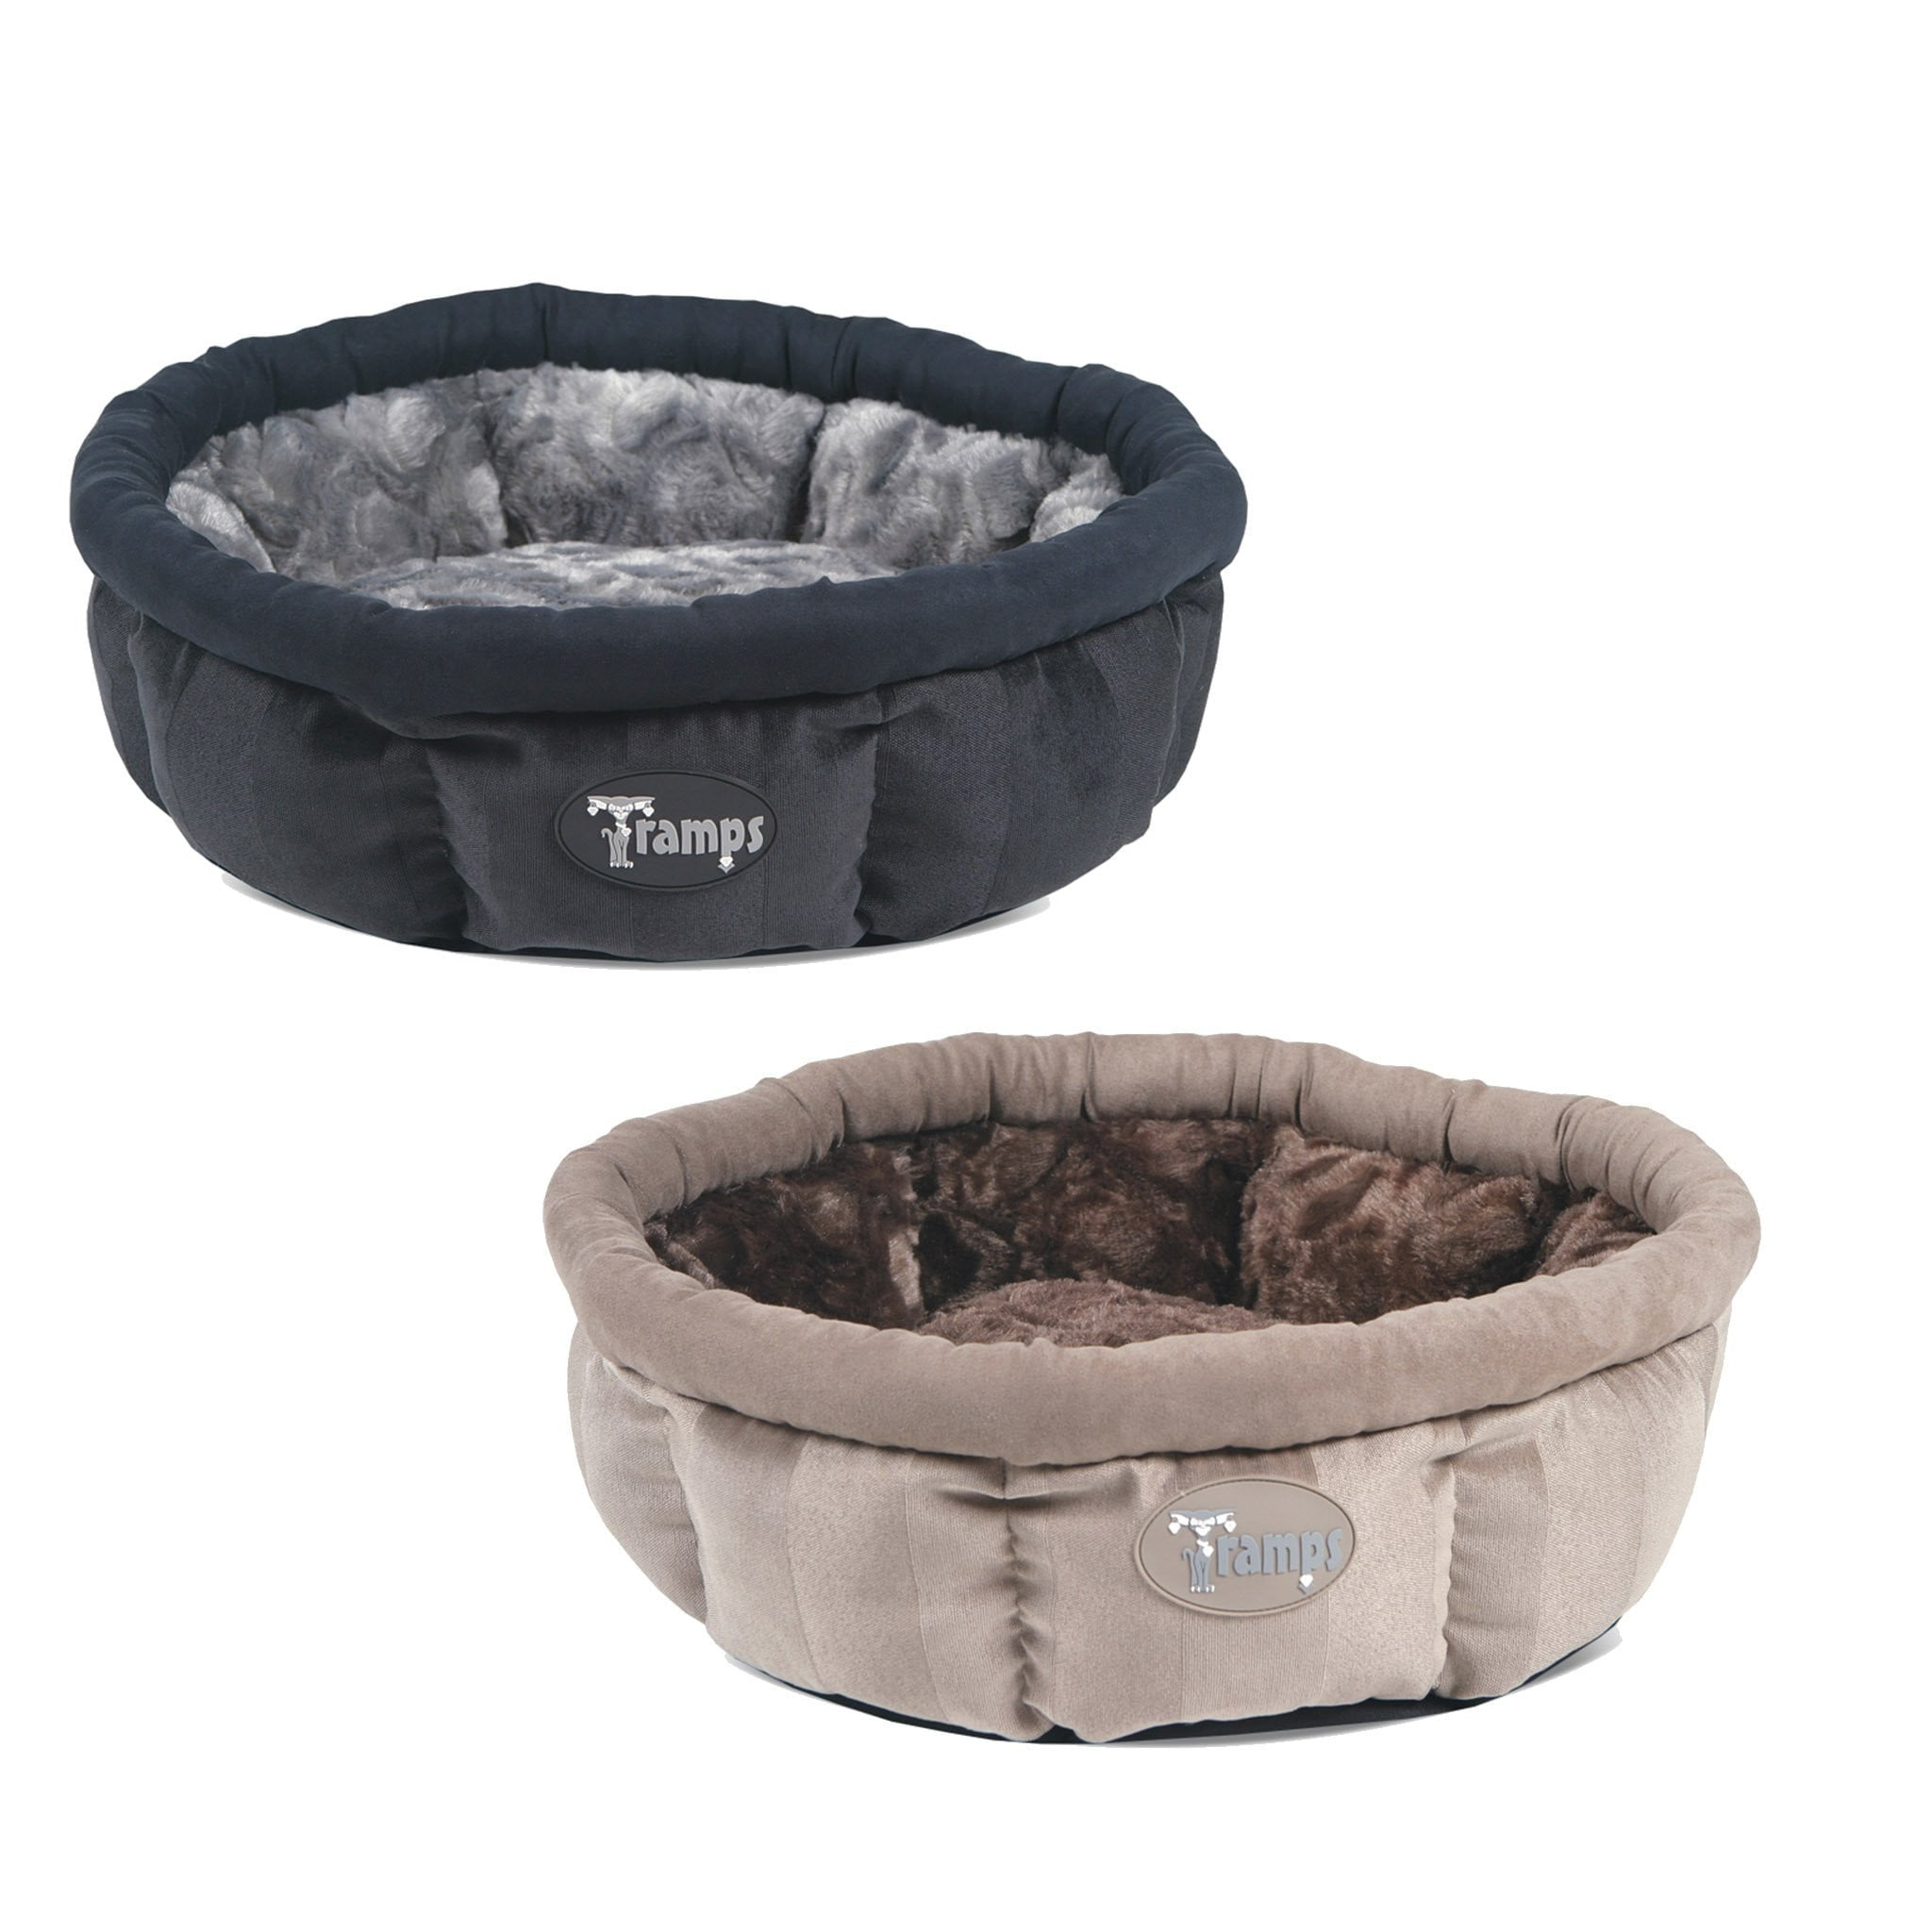 Tramps AristoCat Ring Cat Bed - comfypet